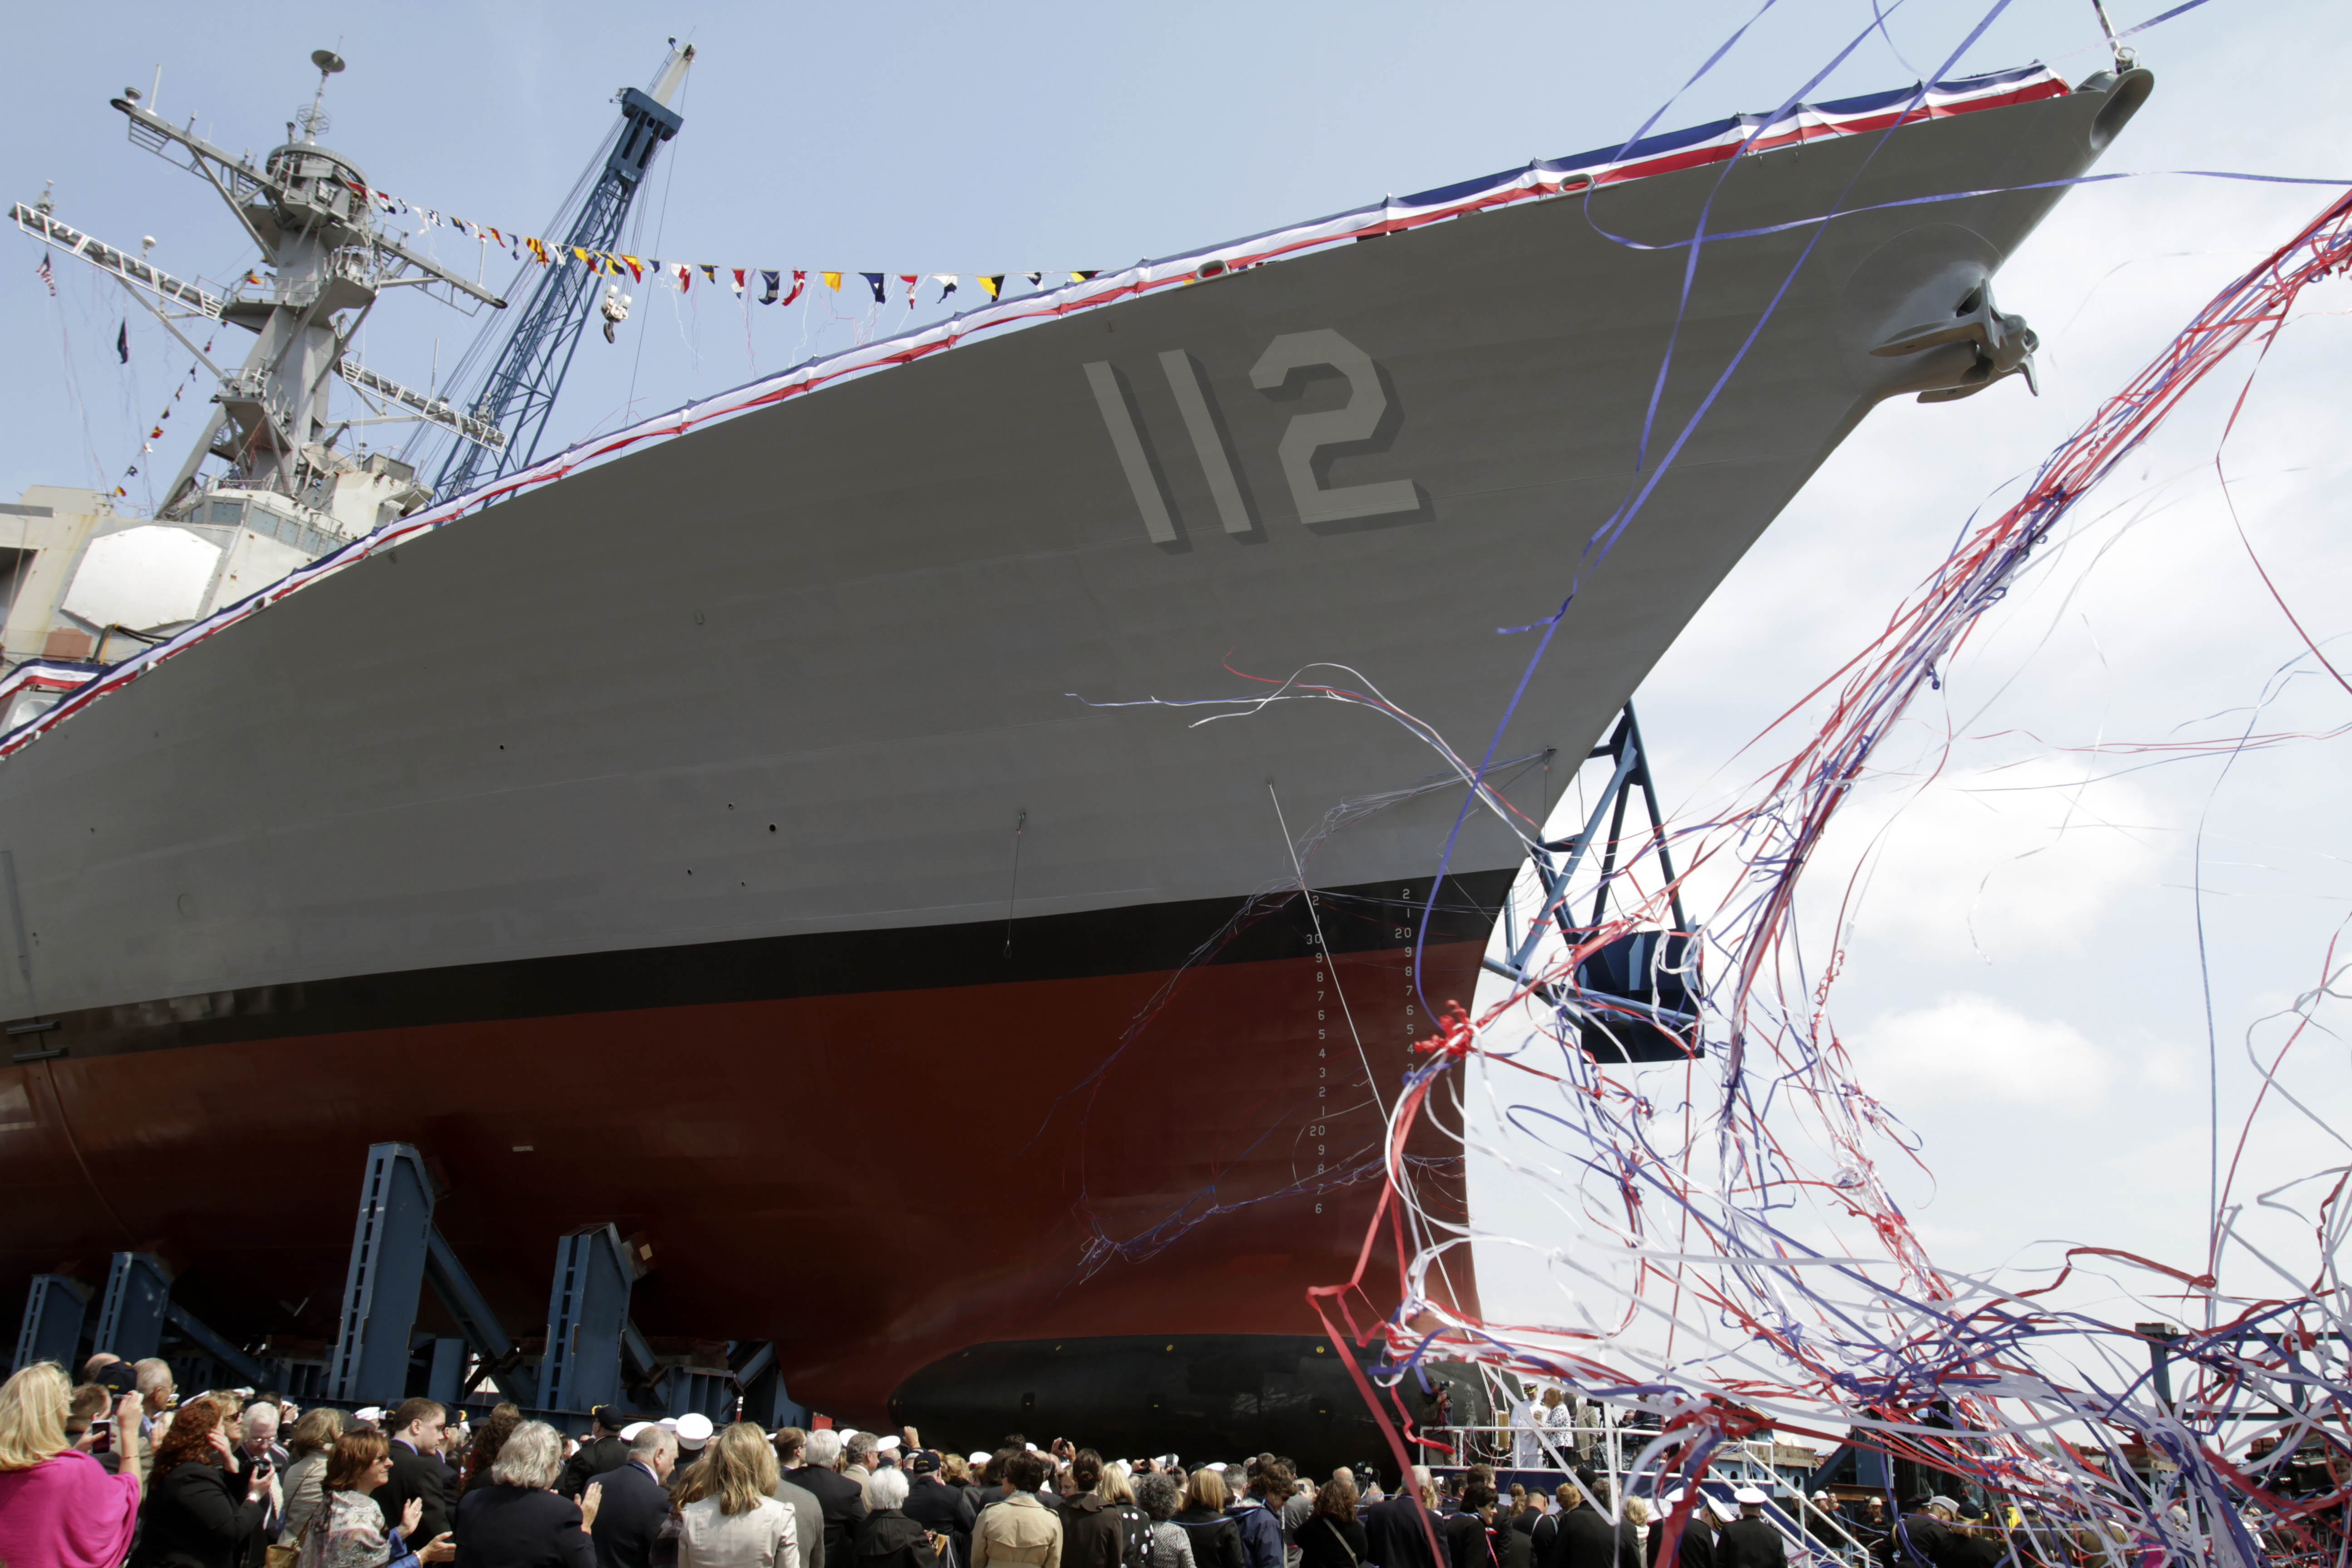 """Maureen Murphy, mother of  Medal of Honor recipient and U.S. Navy SEAL, Lt.  Michael Murphy, christens the ship baring his name during a ceremony at the Bath Iron Works shipyard in Bath, Maine on Saturday, May 7, 2011, what would've been Murphy's 35th birthday. The mother of a Navy SEAL from Maine killed in Afghanistan said """"Happy birthday, baby"""" before smashing a bottle of Champagne against a Navy ship that bears her son's name. (AP Photo/Pat Wellenbach)"""